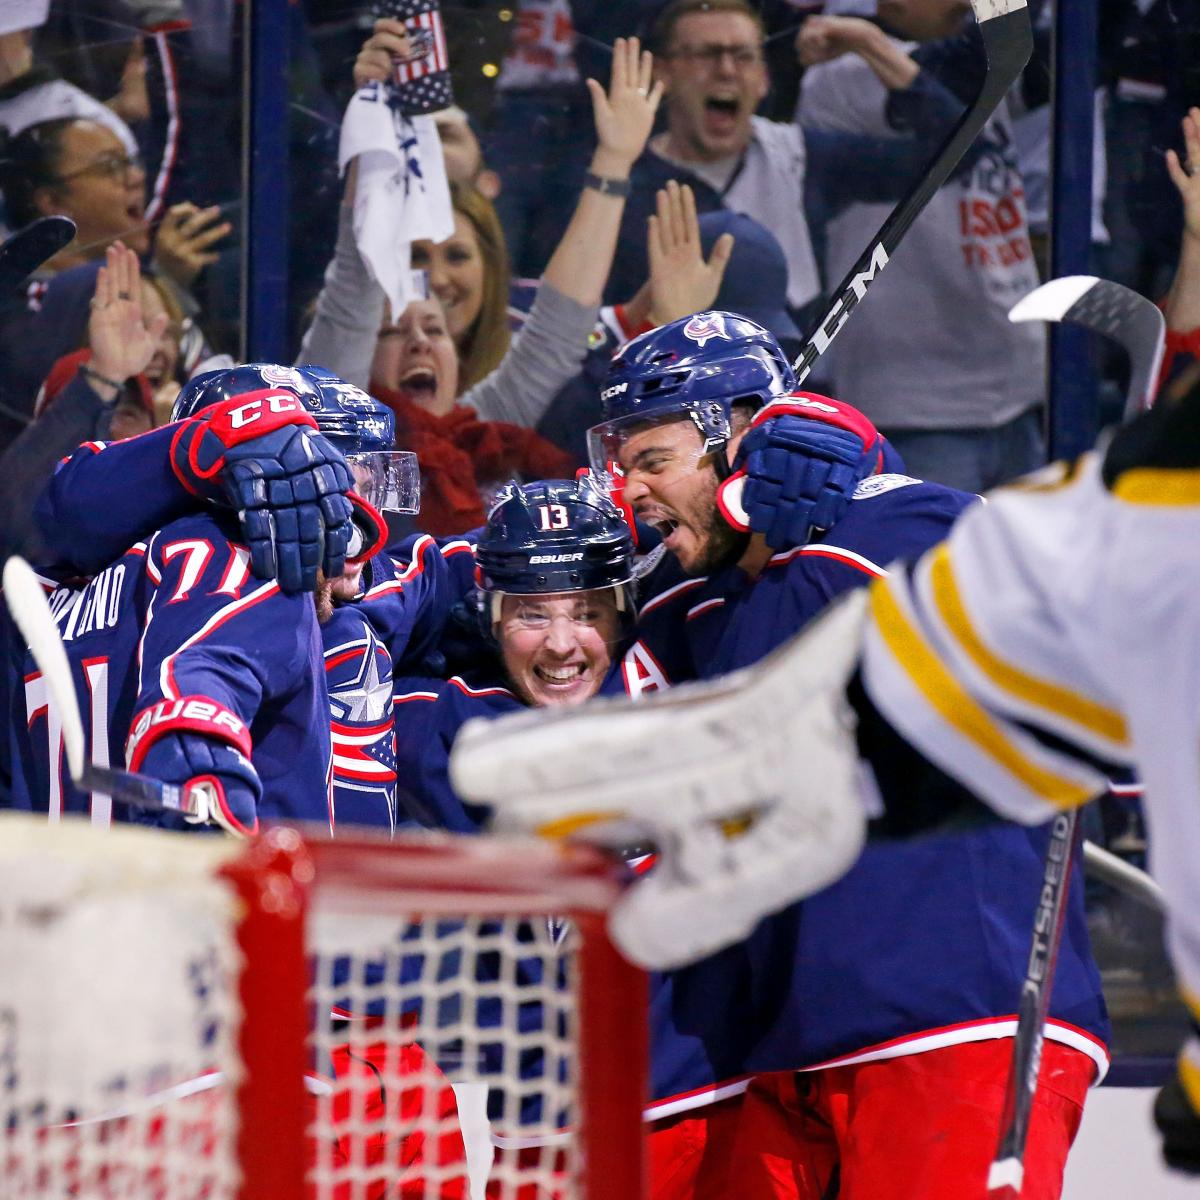 Matt Duchene Powers Blue Jackets Past Bruins In Game 3 For